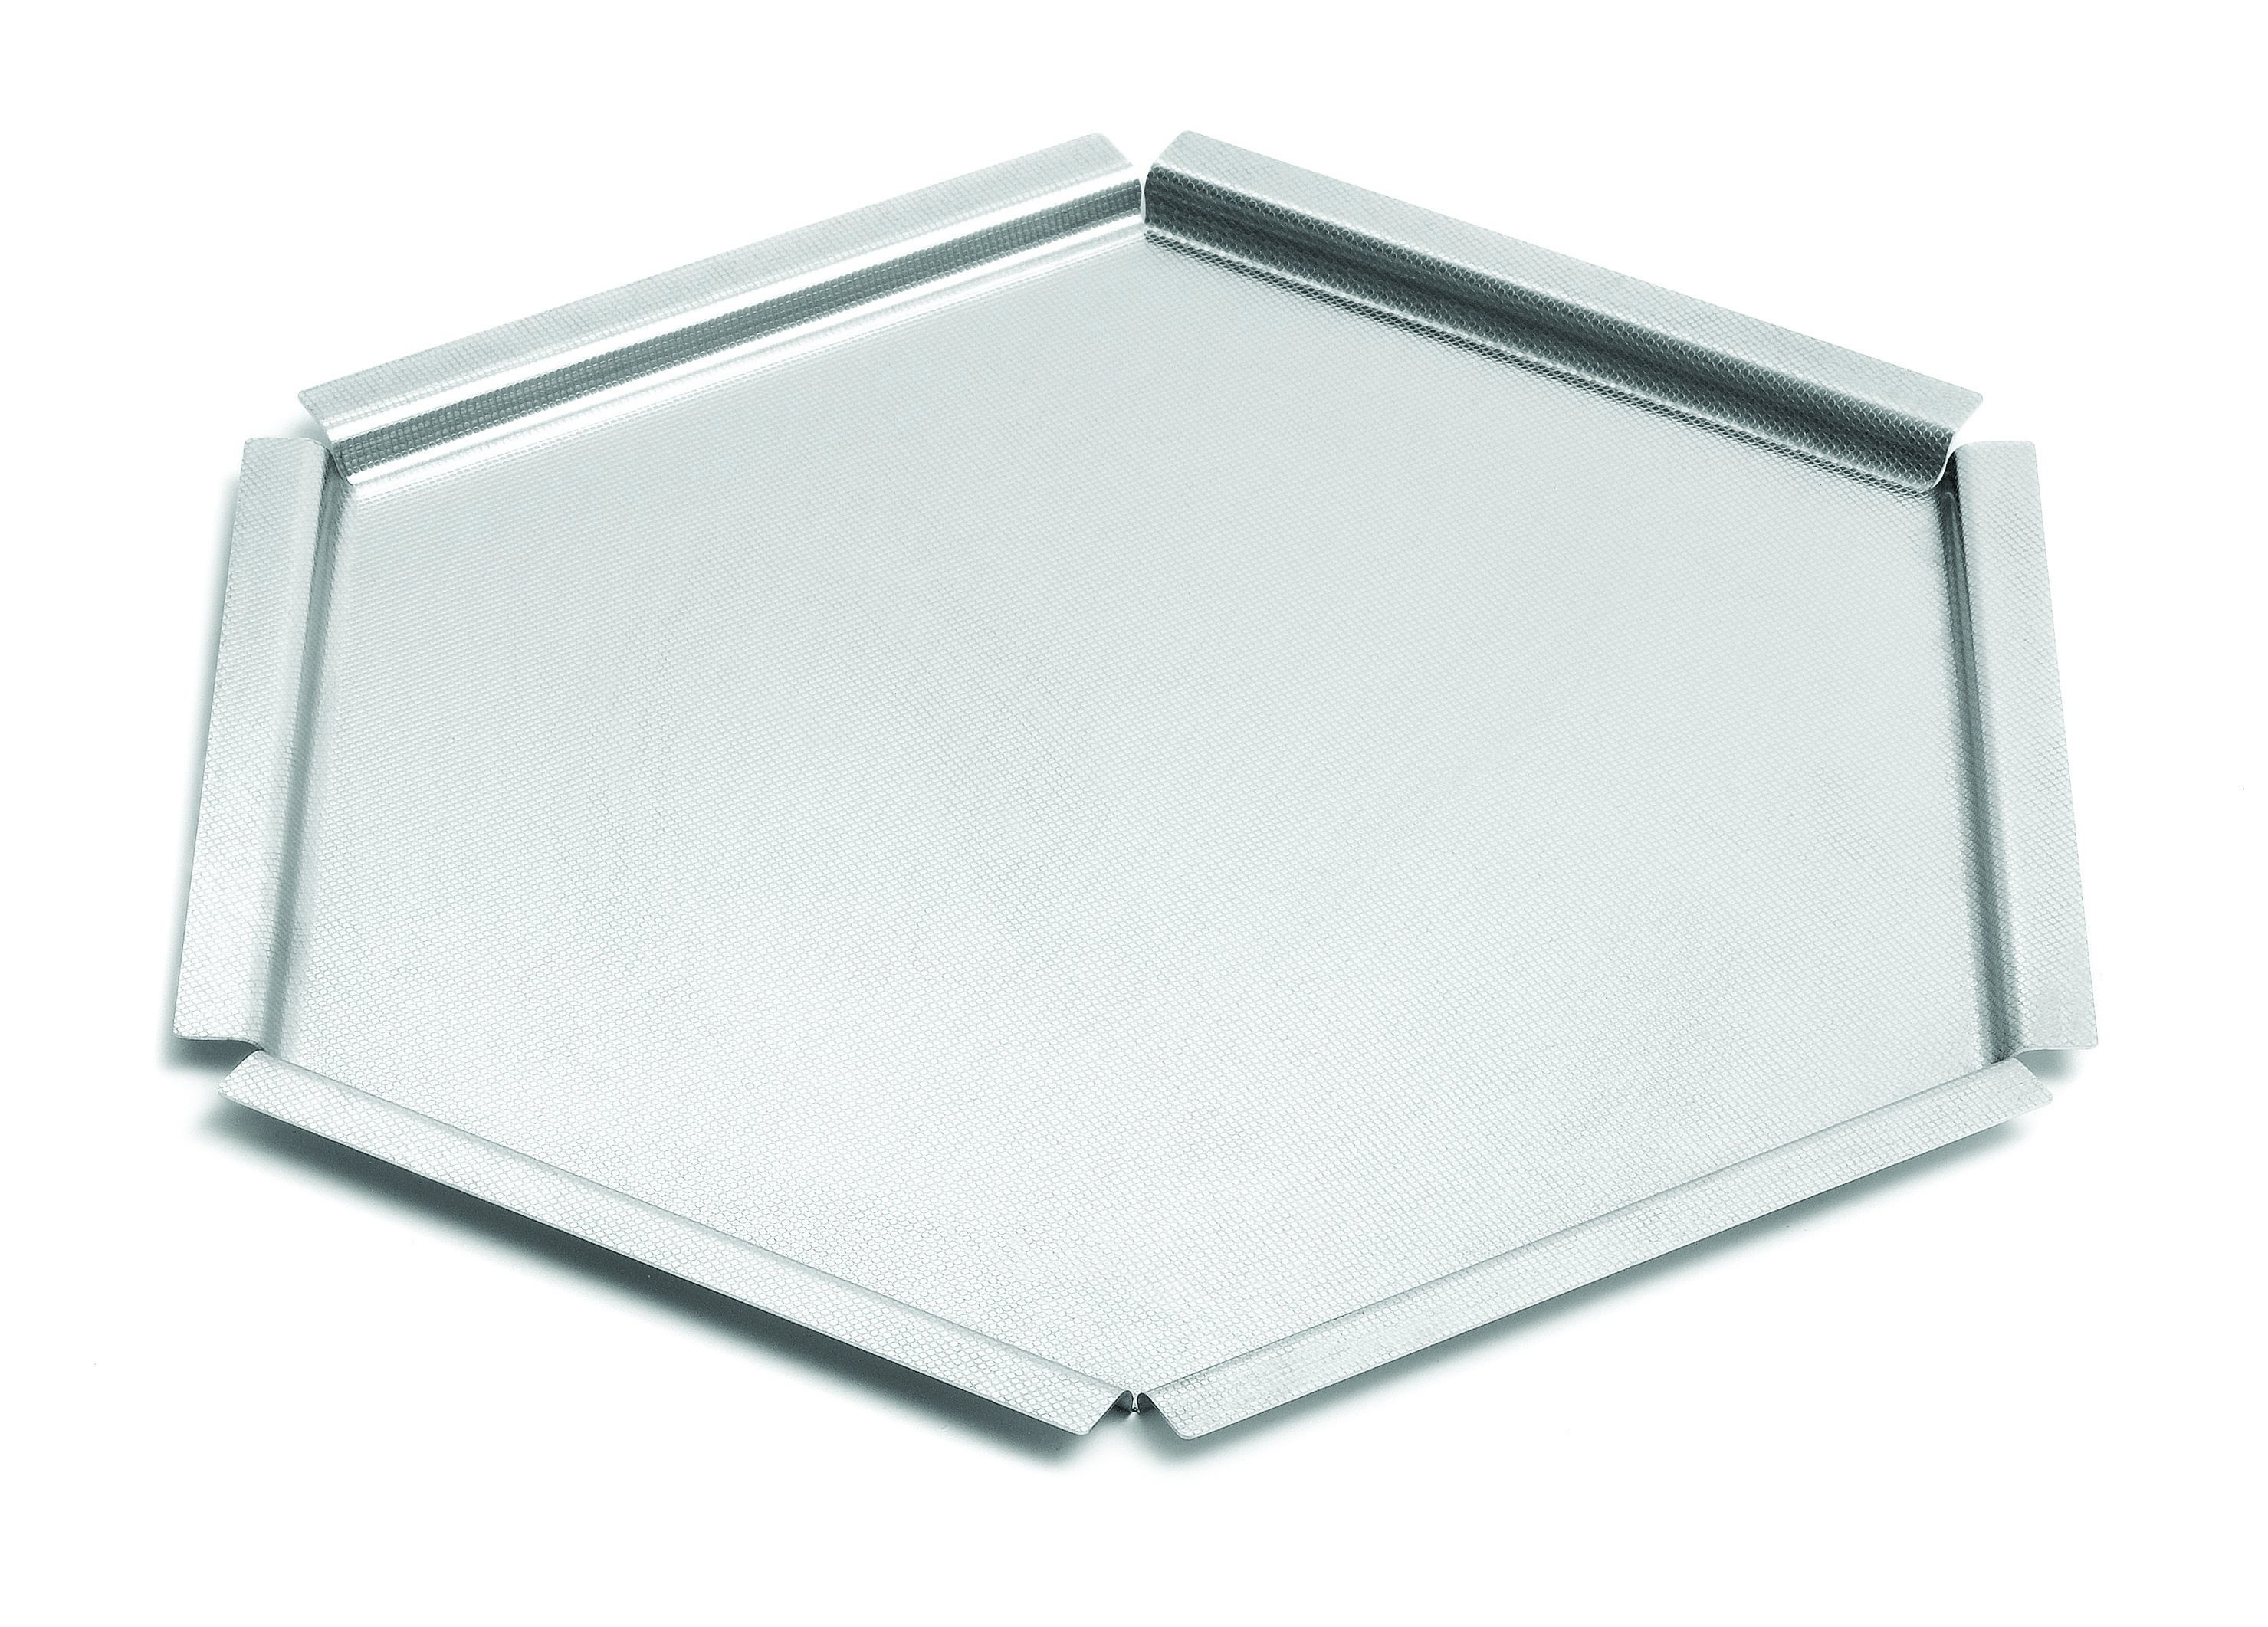 """Rosseto SM121 Honeycomb™ 18"""" Large Textured Stainless Steel Tray Surface"""